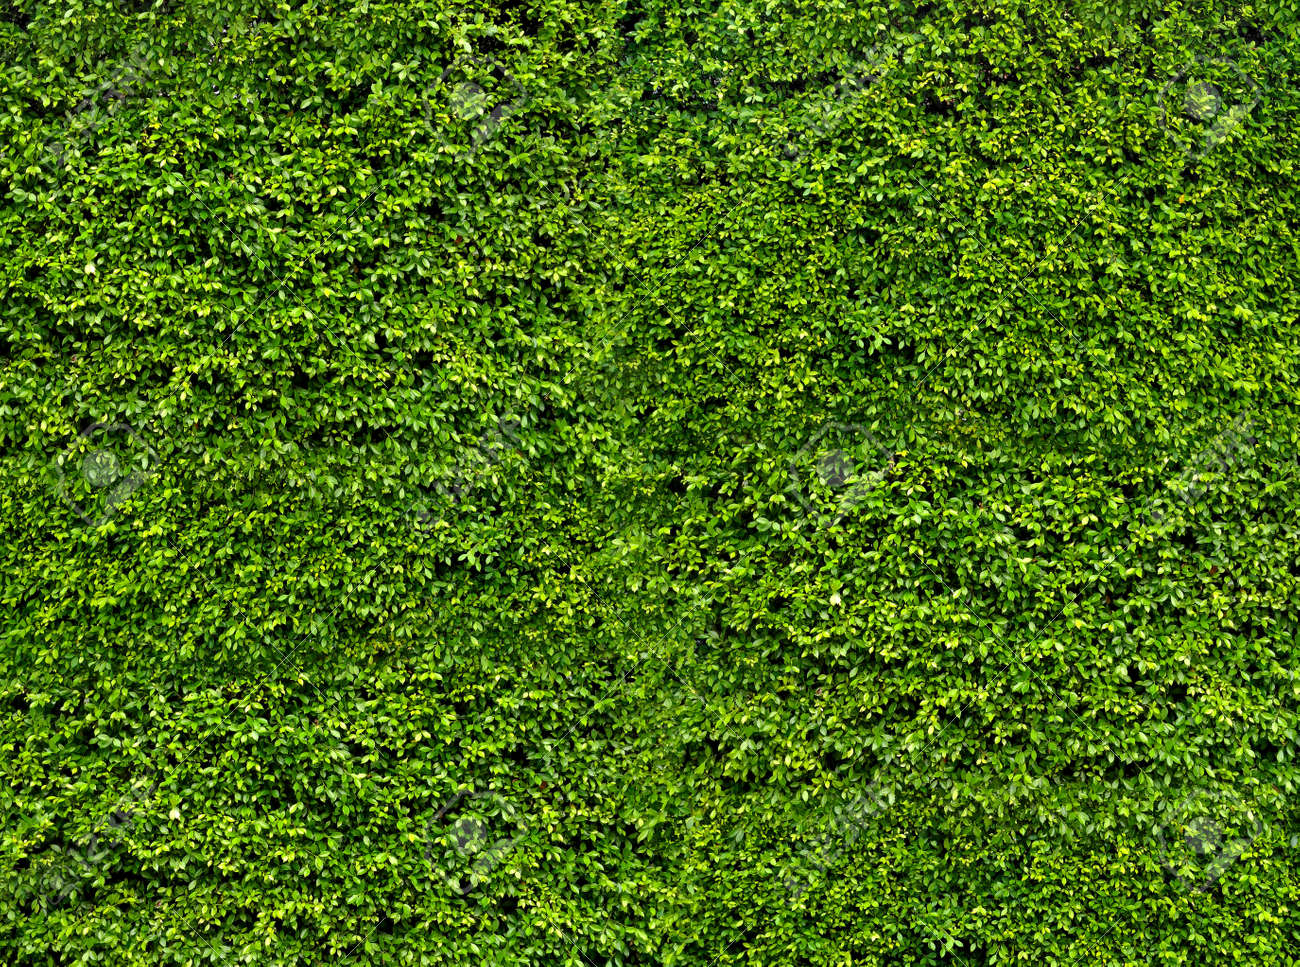 Natural fresh green leaf wall, eco friendly background and texture - 70438767